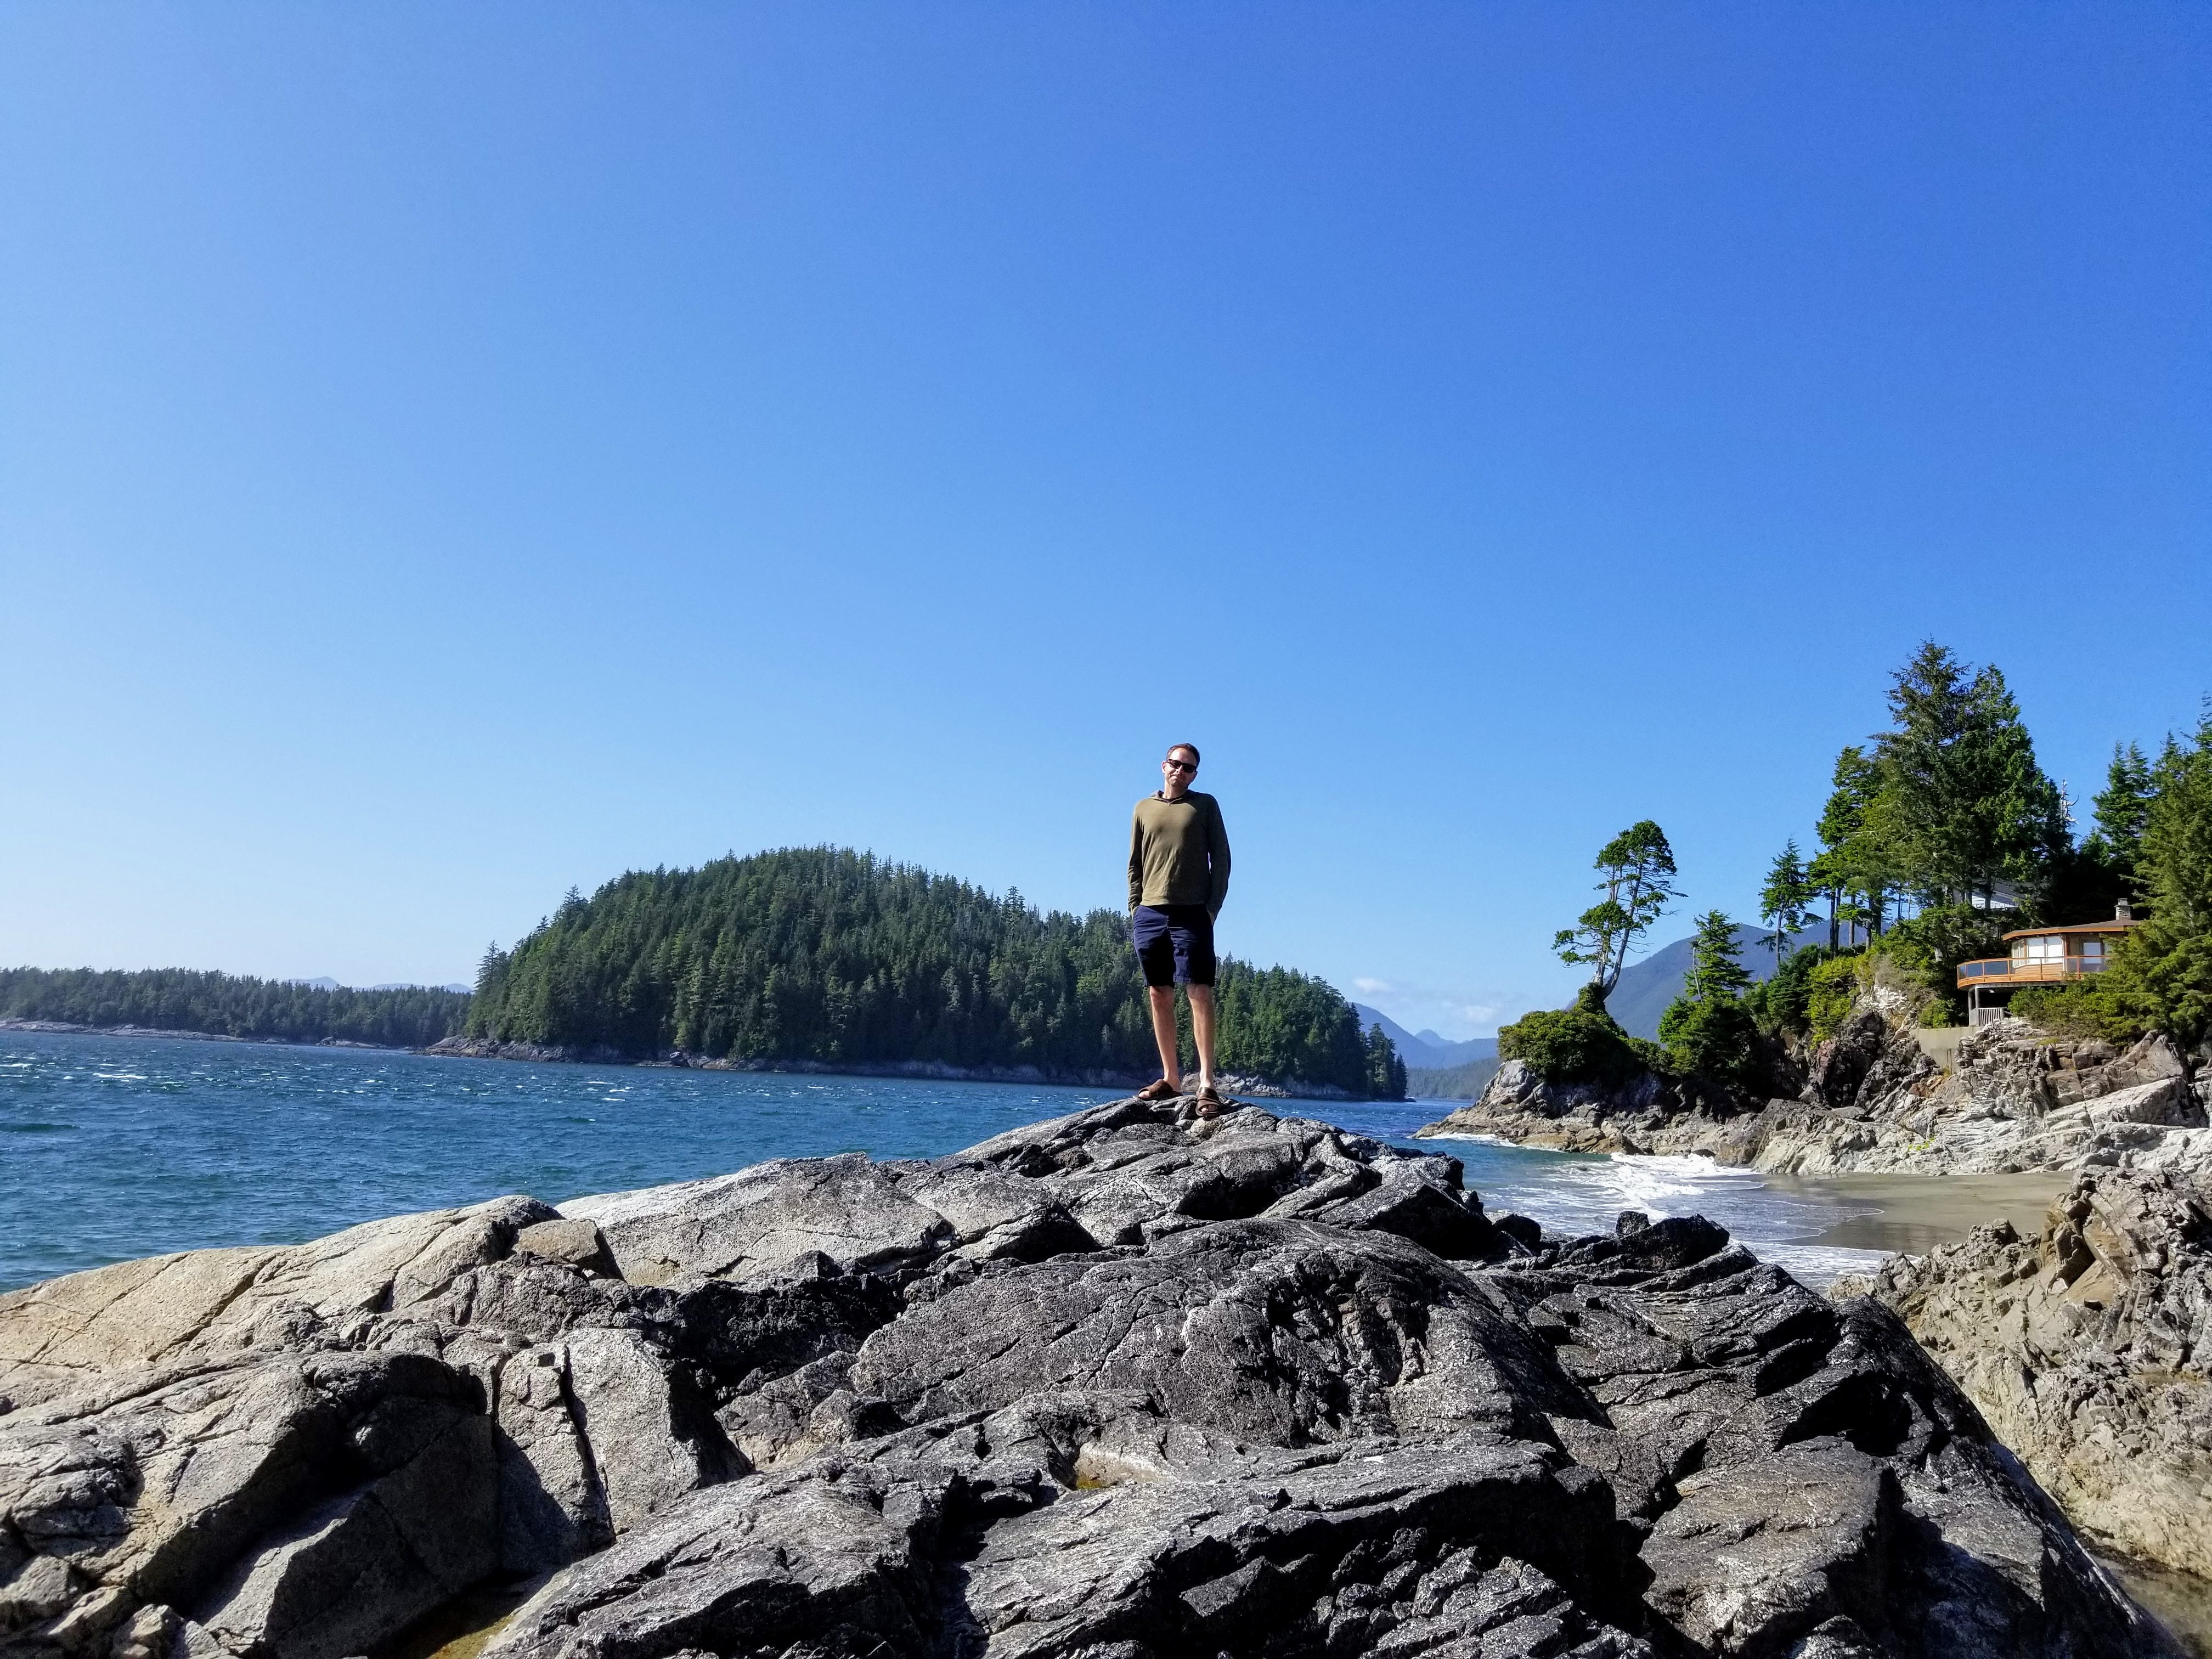 Jason at Tonquin Beach